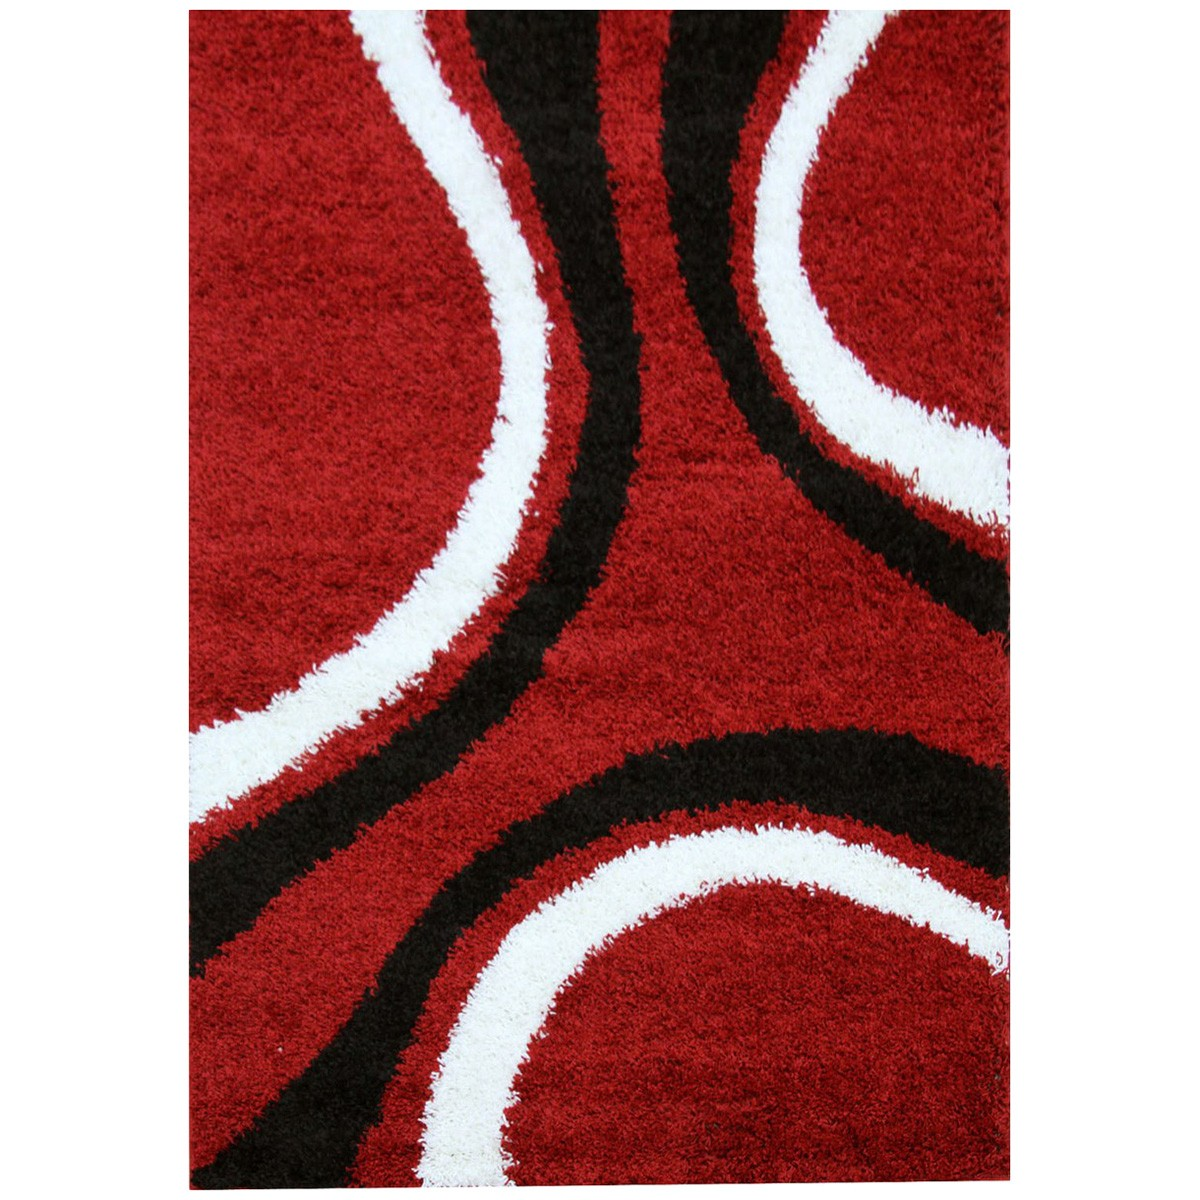 Notes Urban Curves I Turkish Made Shag Rug, 150x80cm, Red / Black